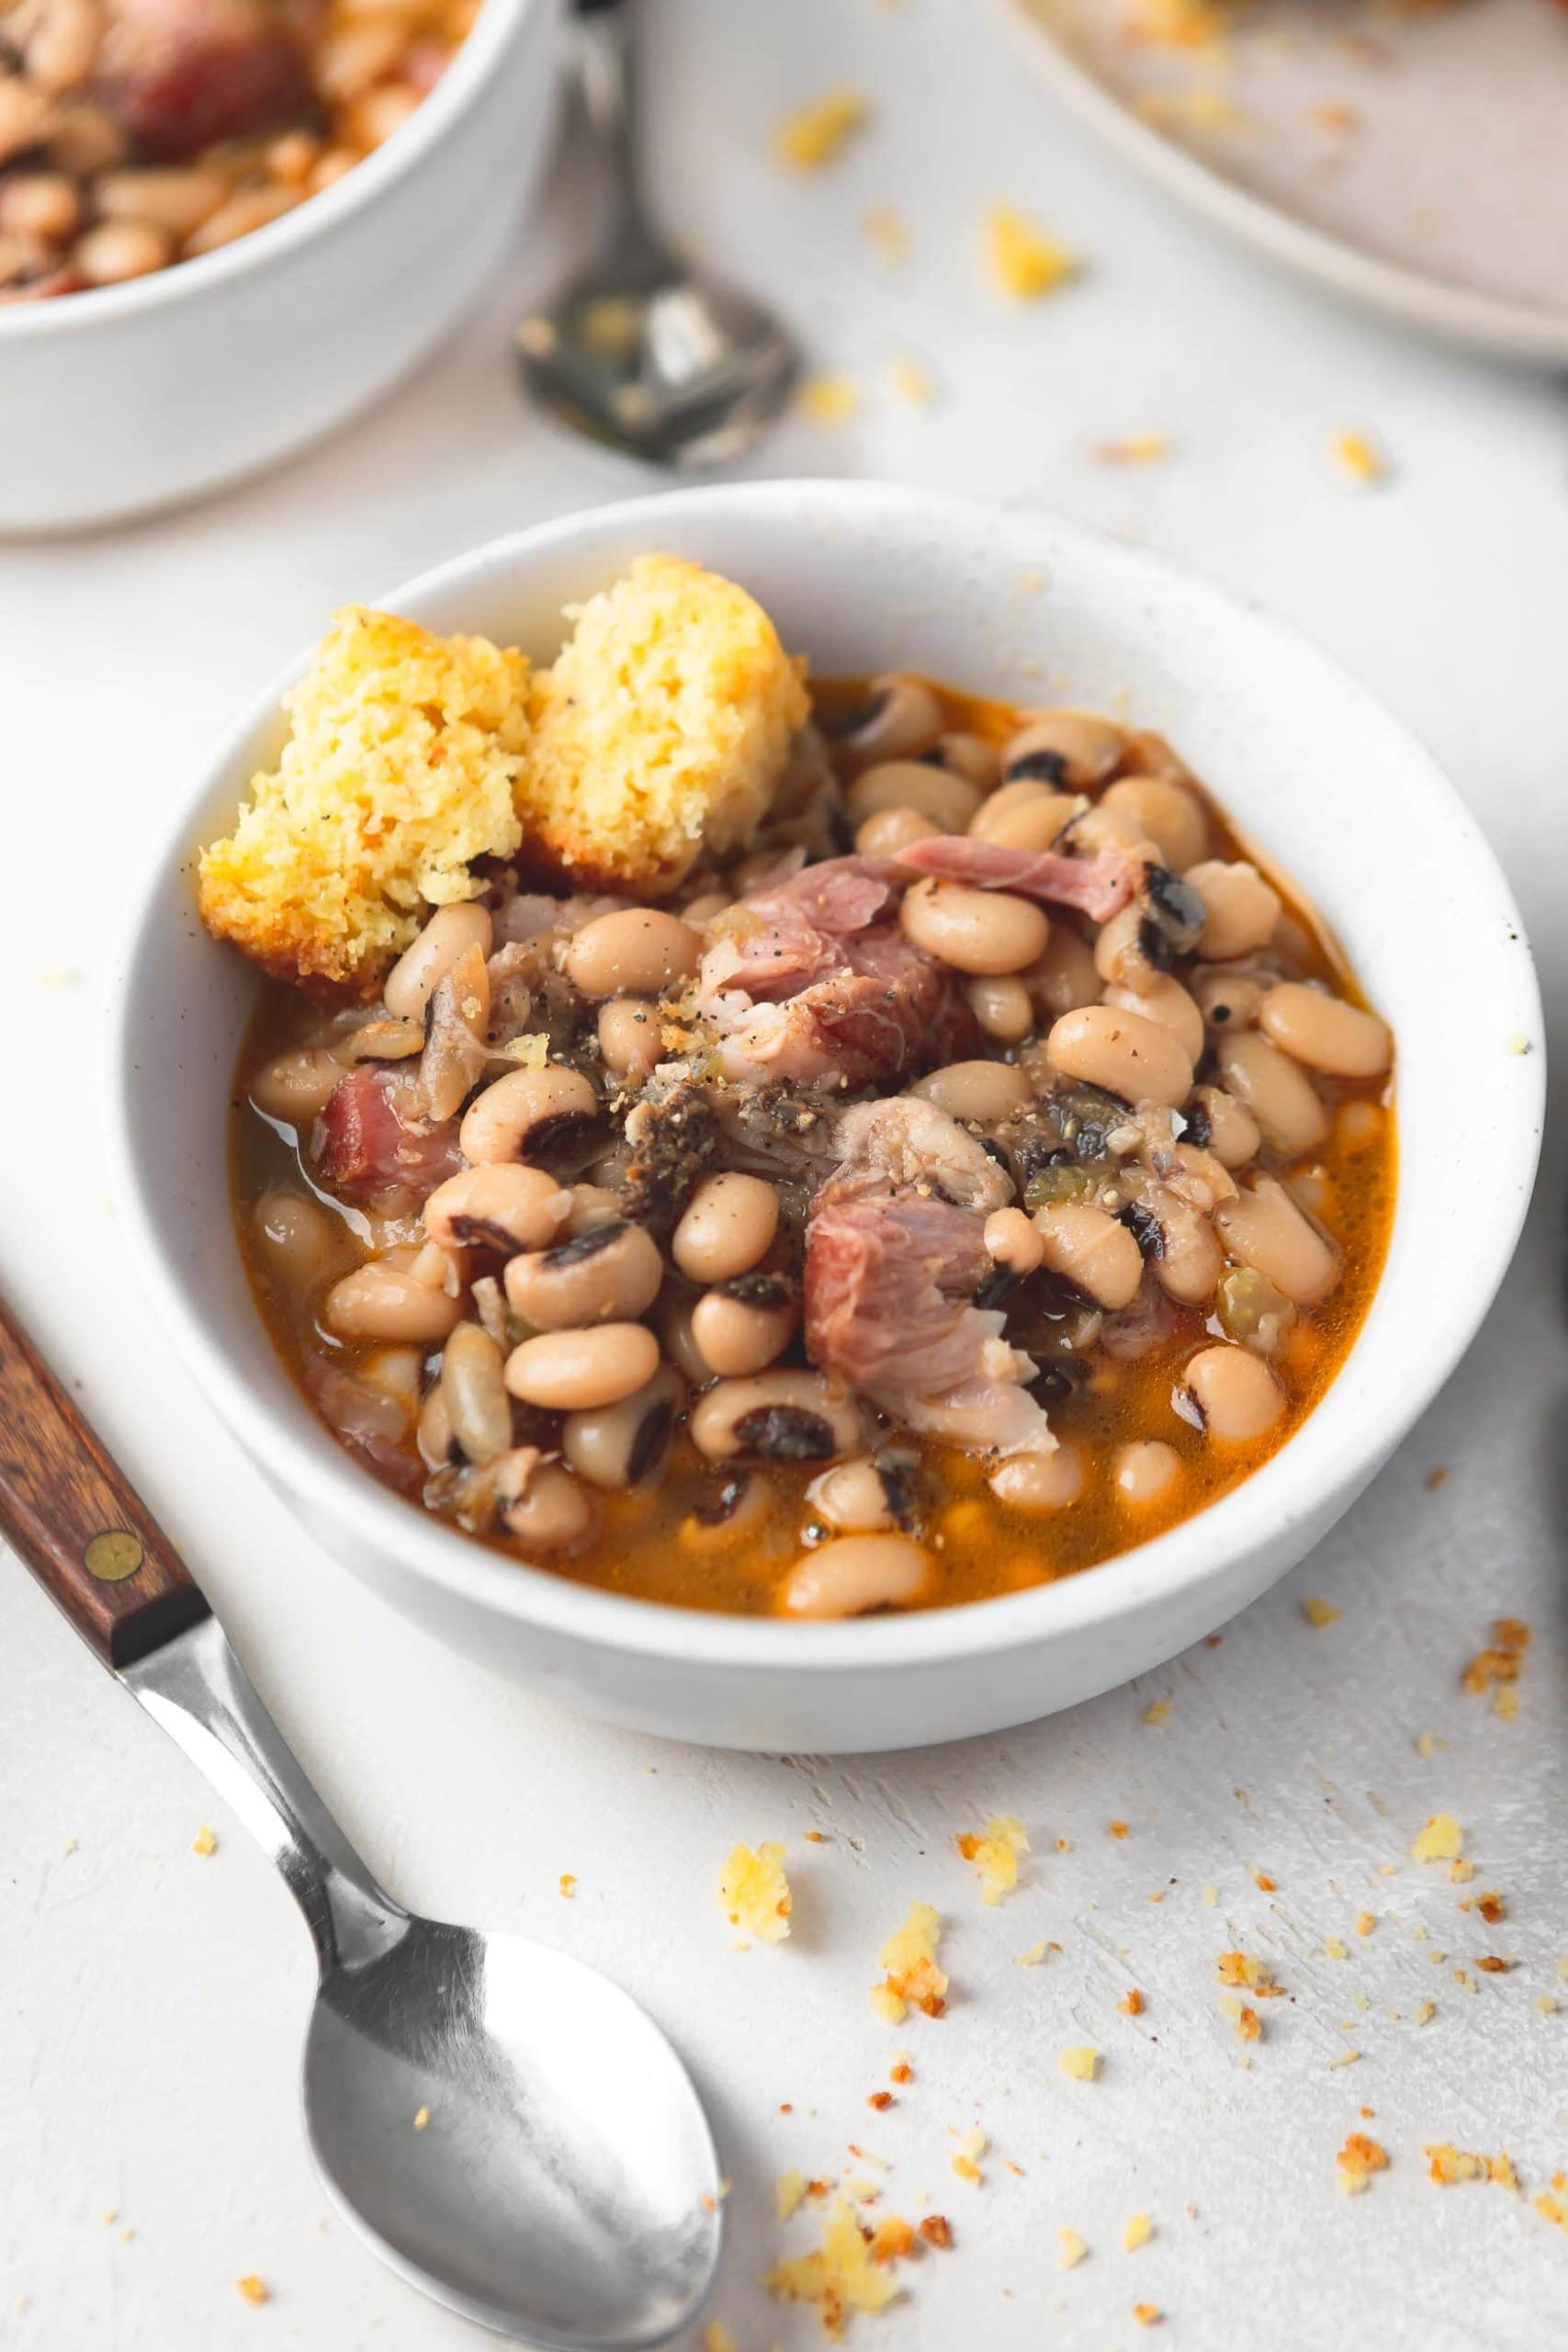 A bowl of southern black eyed peas. There are chunks of ham in the peas and a broken piece of cornbread on the side.